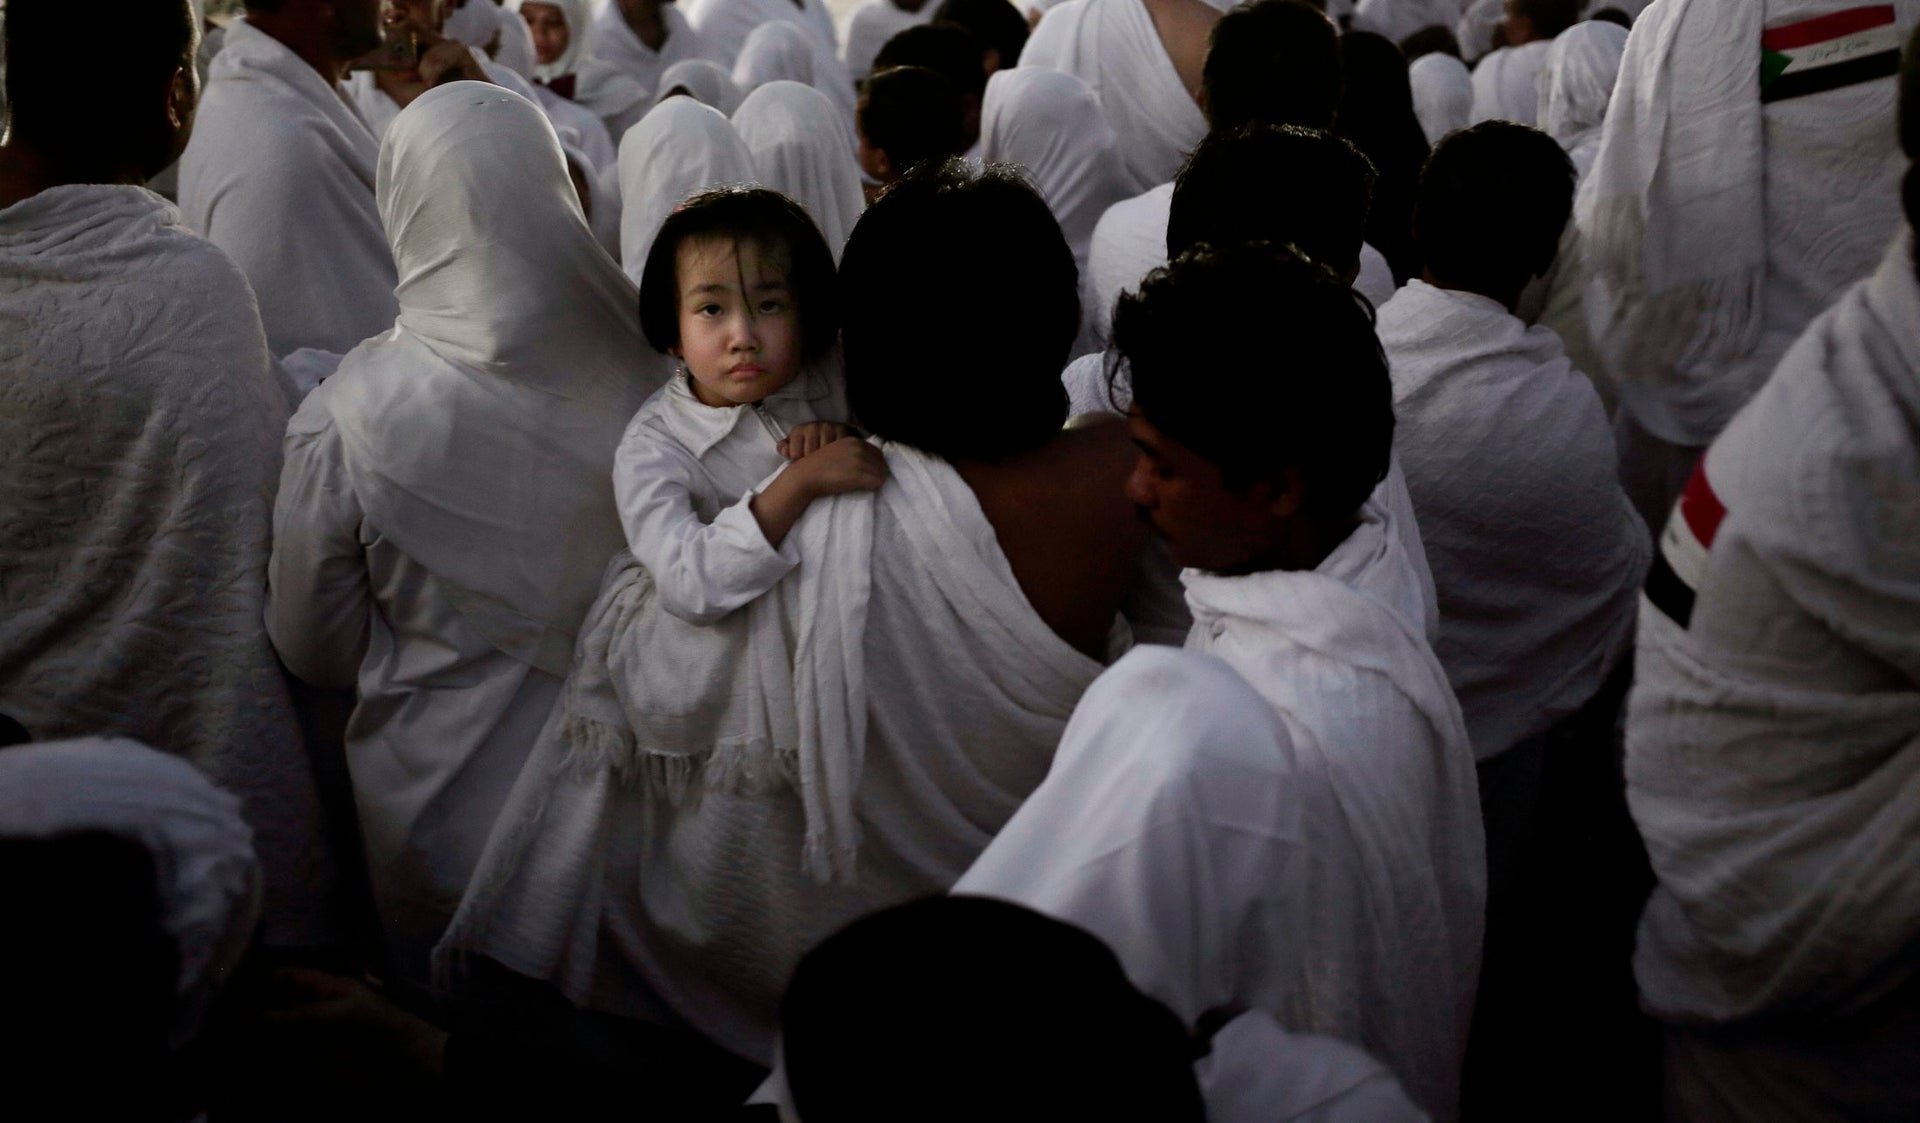 An Indonesian father carries his daughter through the crowd after reaching the top of a rocky hill known as Mountain of Mercy, on the Plain of Arafat, during the annual hajj pilgrimage, ahead of sunrise near the holy city of Mecca, Saudi Arabia, Sunday, Sept. 11, 2016. Mount Arafat, marked by a white pillar, is where Islam's Prophet Muhammad is believed to have delivered his last sermon to tens of thousands of followers some 1,400 years ago, calling on Muslims to unite.